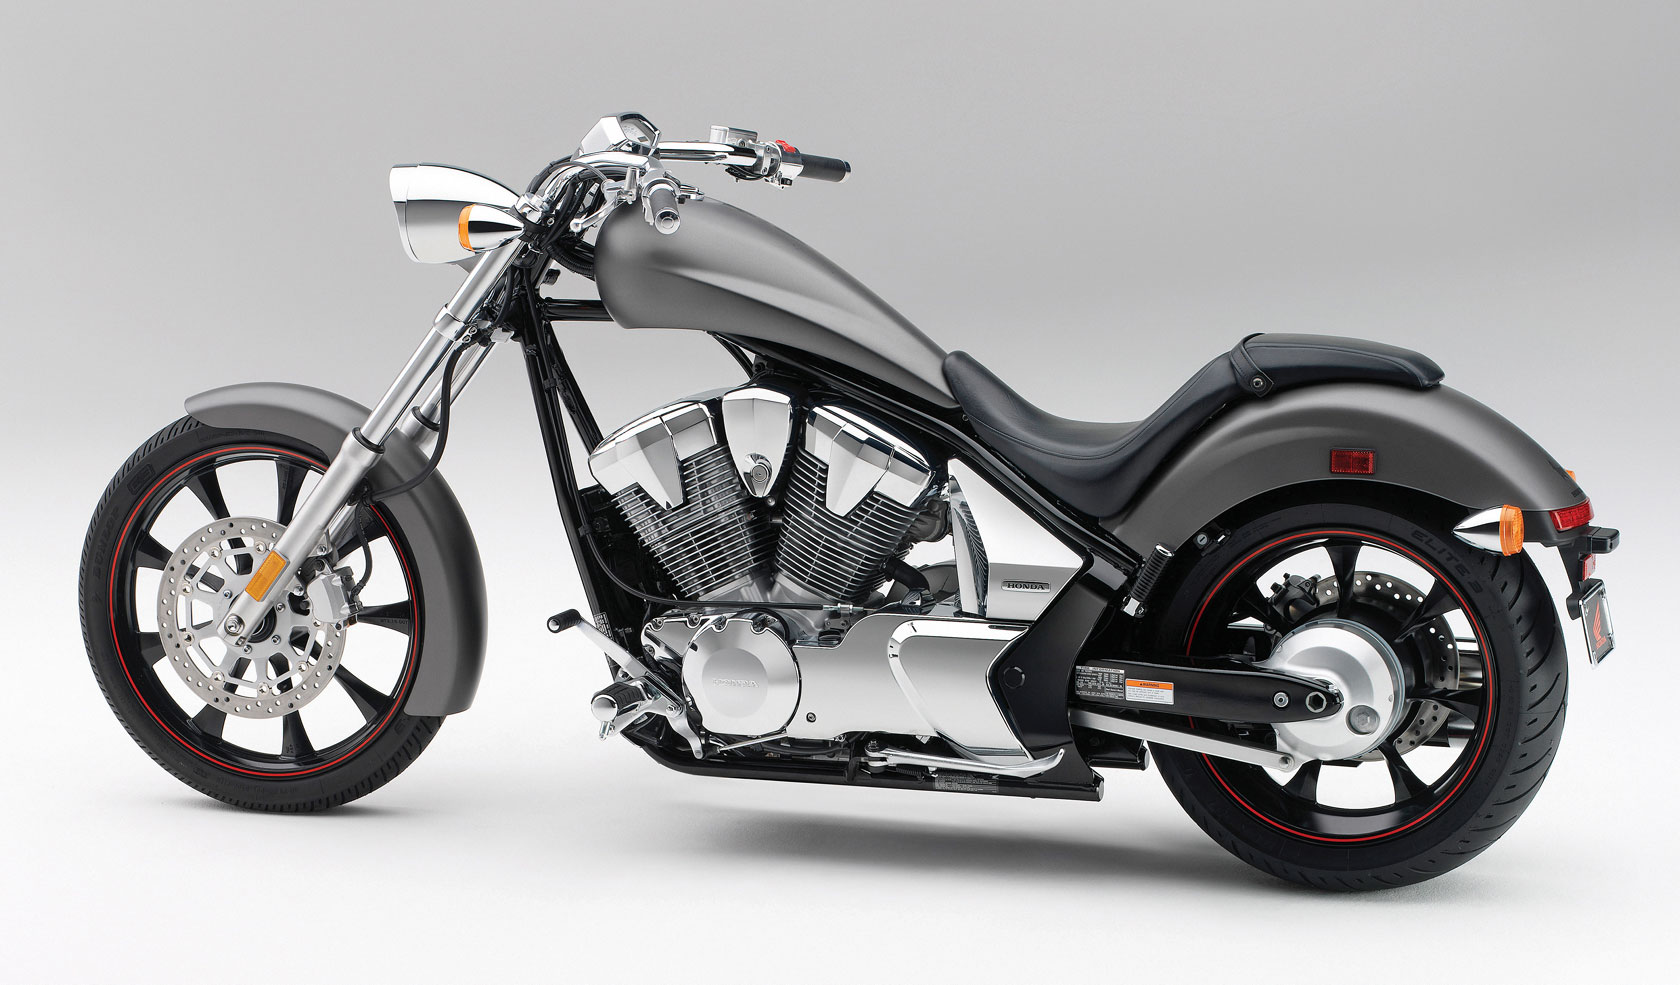 Honda Fury ABS 2015 images #83352